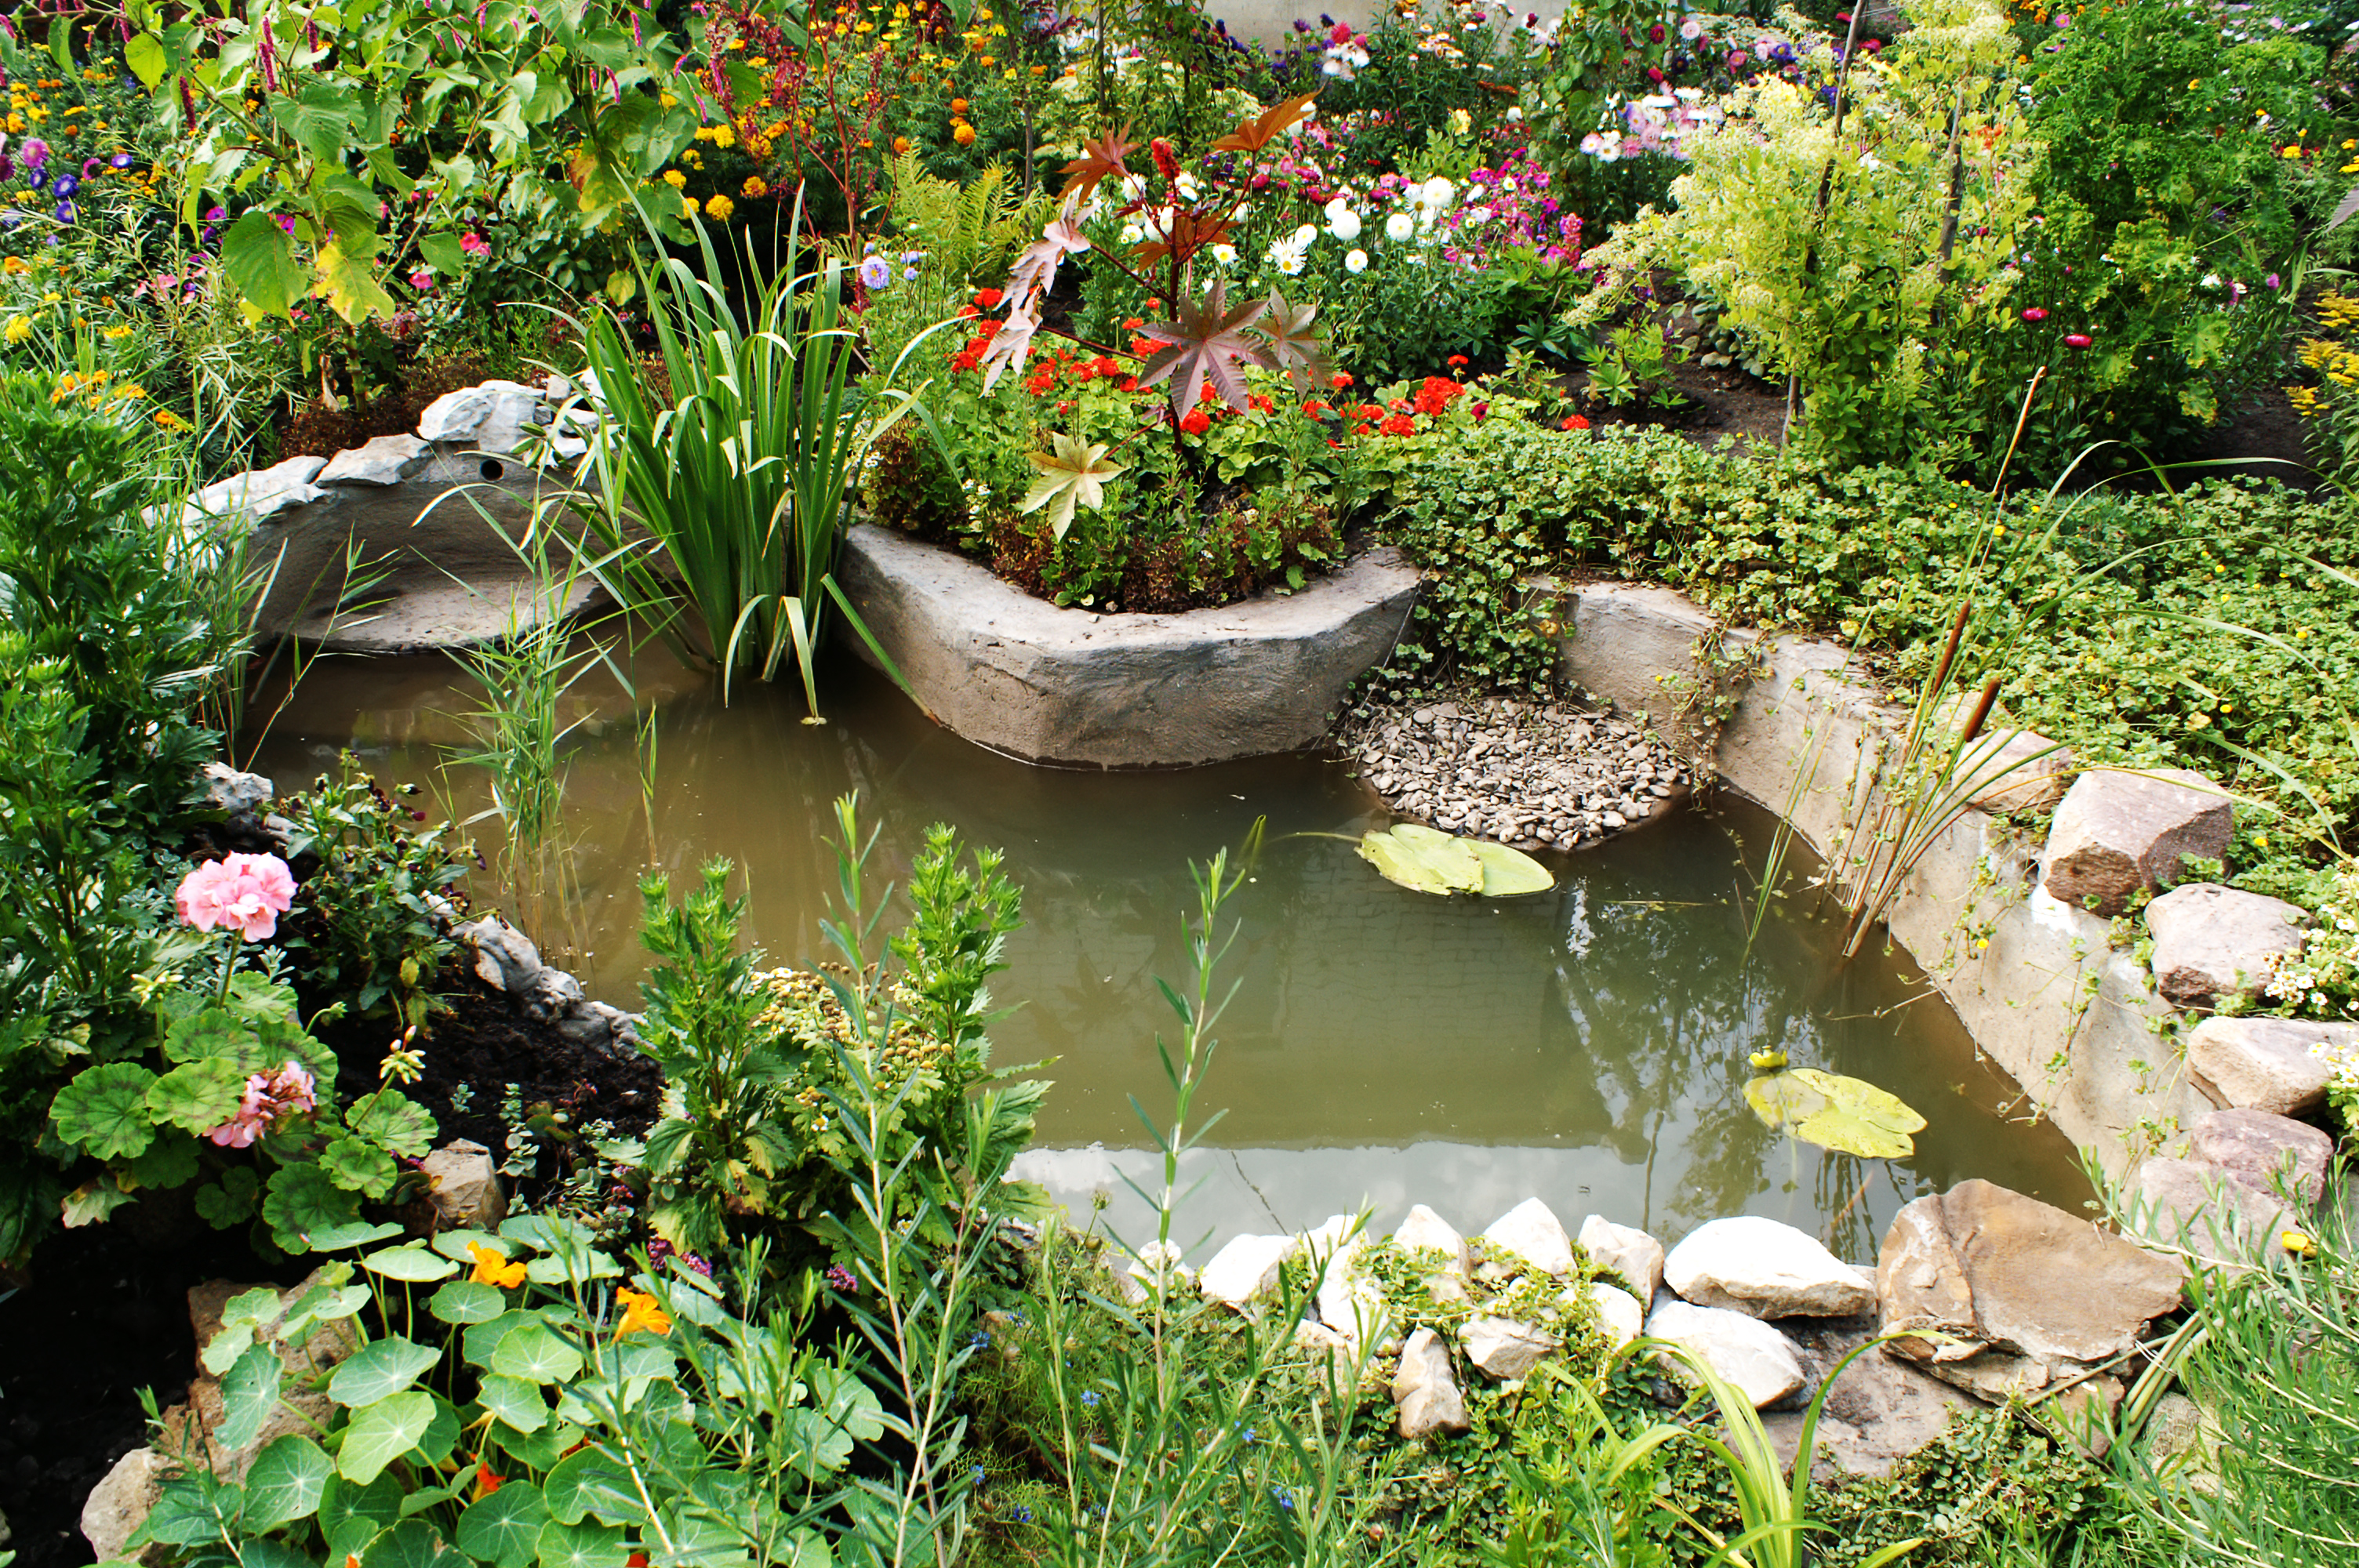 How To Build A Pond A Beginners Guide To Building The Perfect Backyard Pond Aquarium Tidings